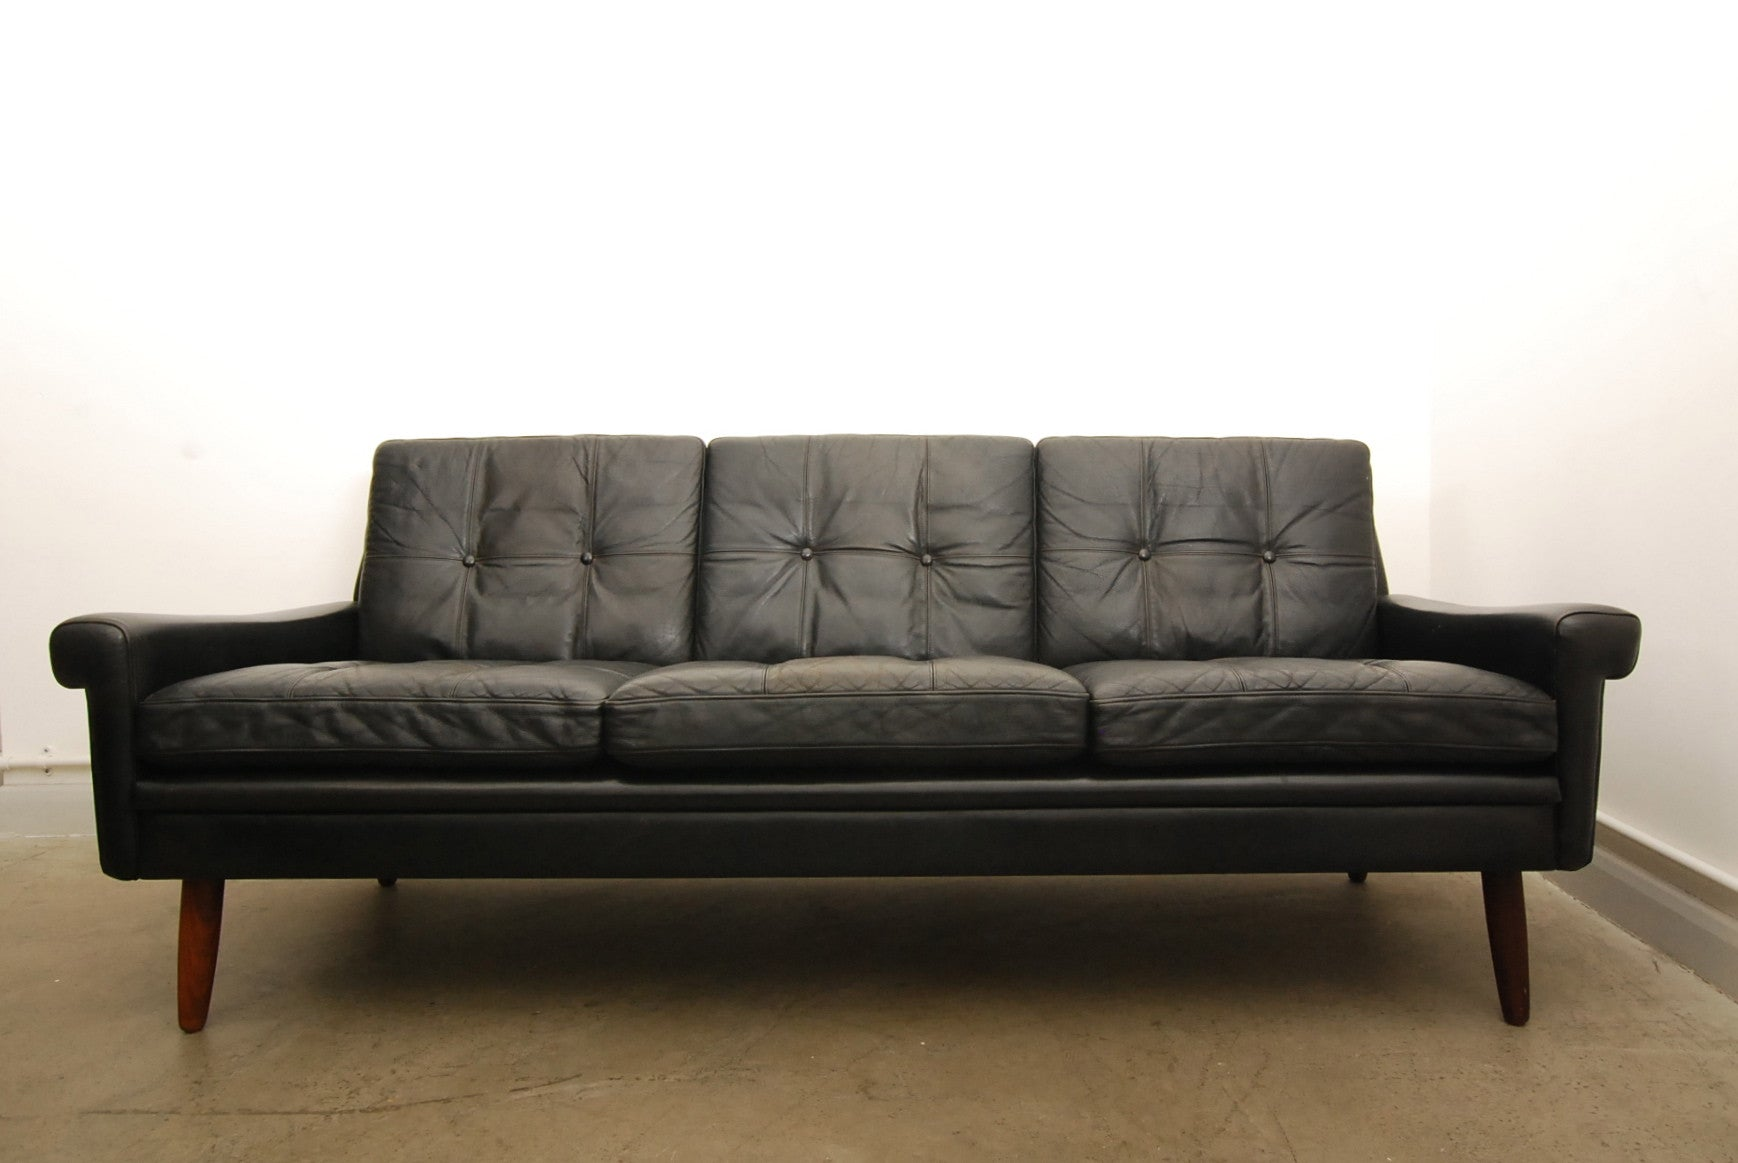 Three seat sofa by Skipper